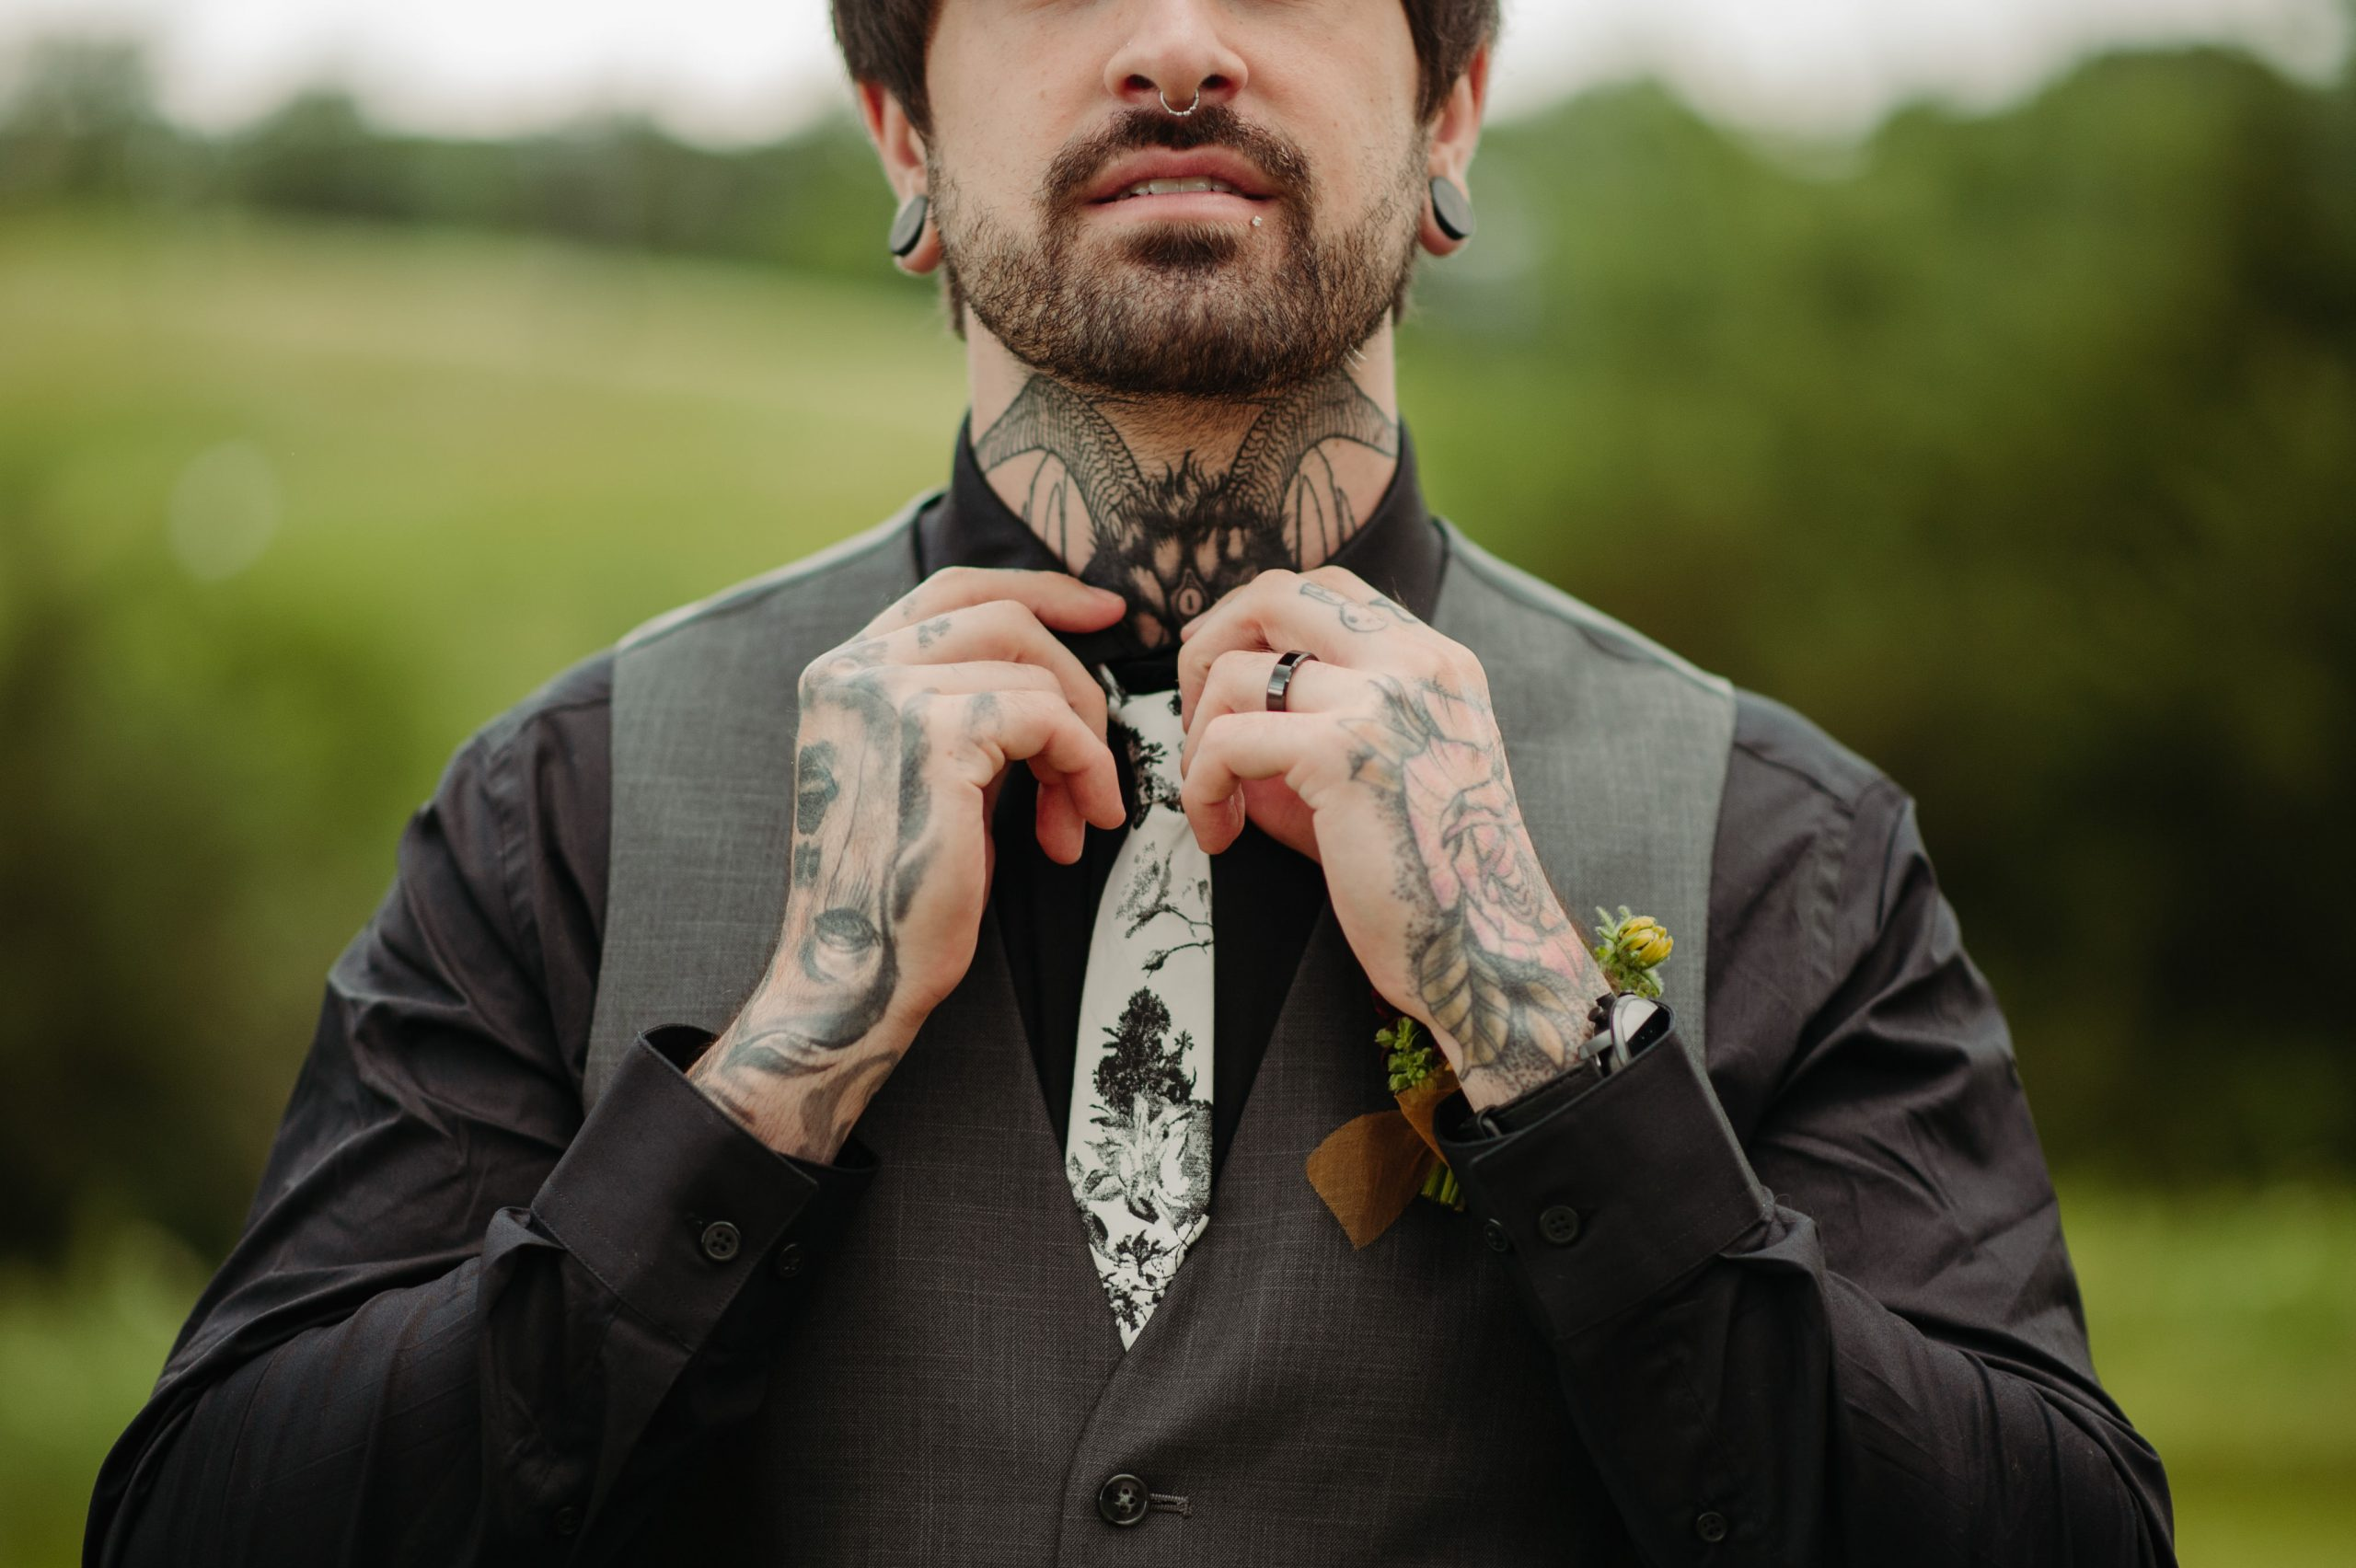 groom with tattoos fixing tie minneapolis minnesota